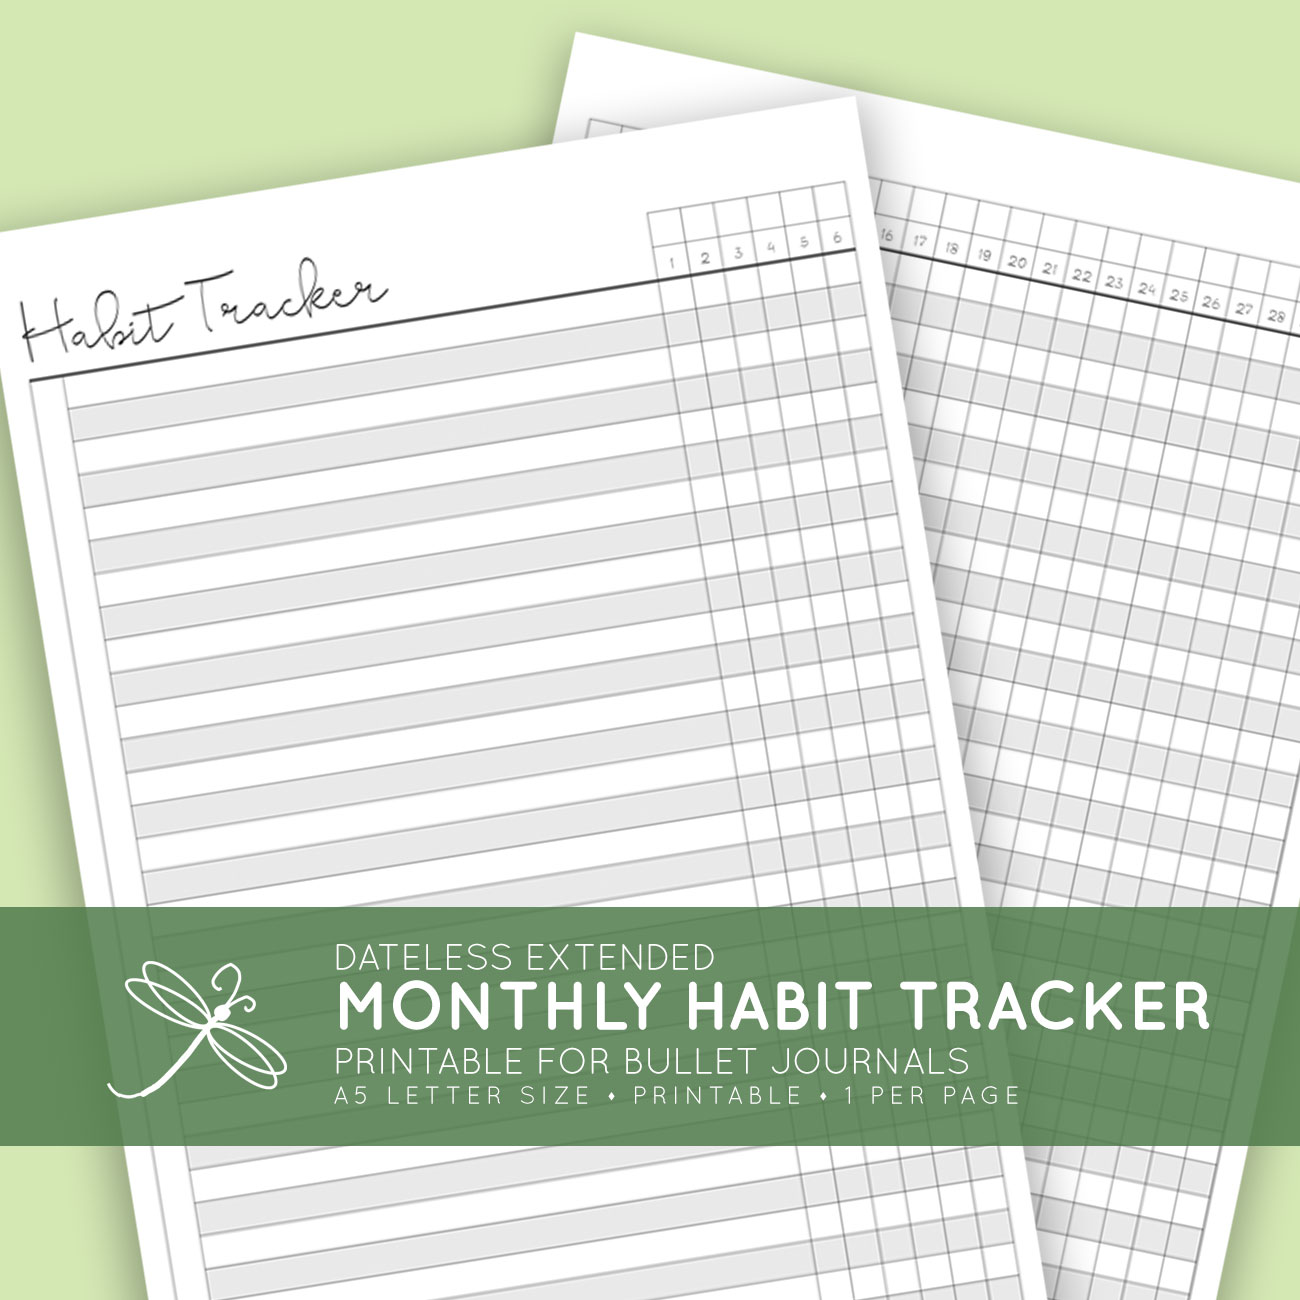 picture relating to Bullet Journal Habit Tracker Printable called Dateless Printable Every month 2 Web site Routine Tracker